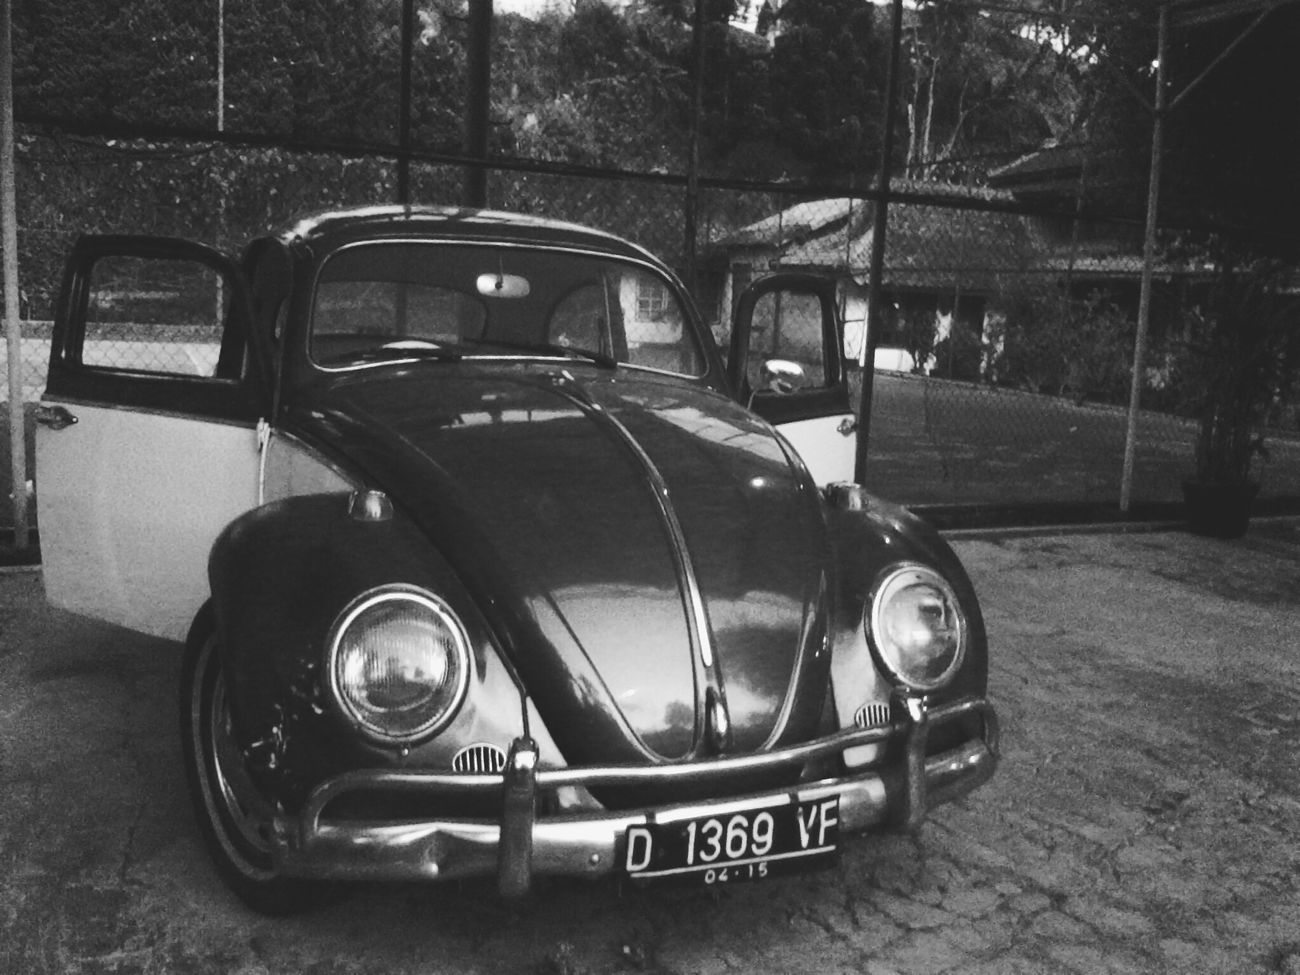 Volkswagen 1300 NokiaX Monochrome Black And White Car